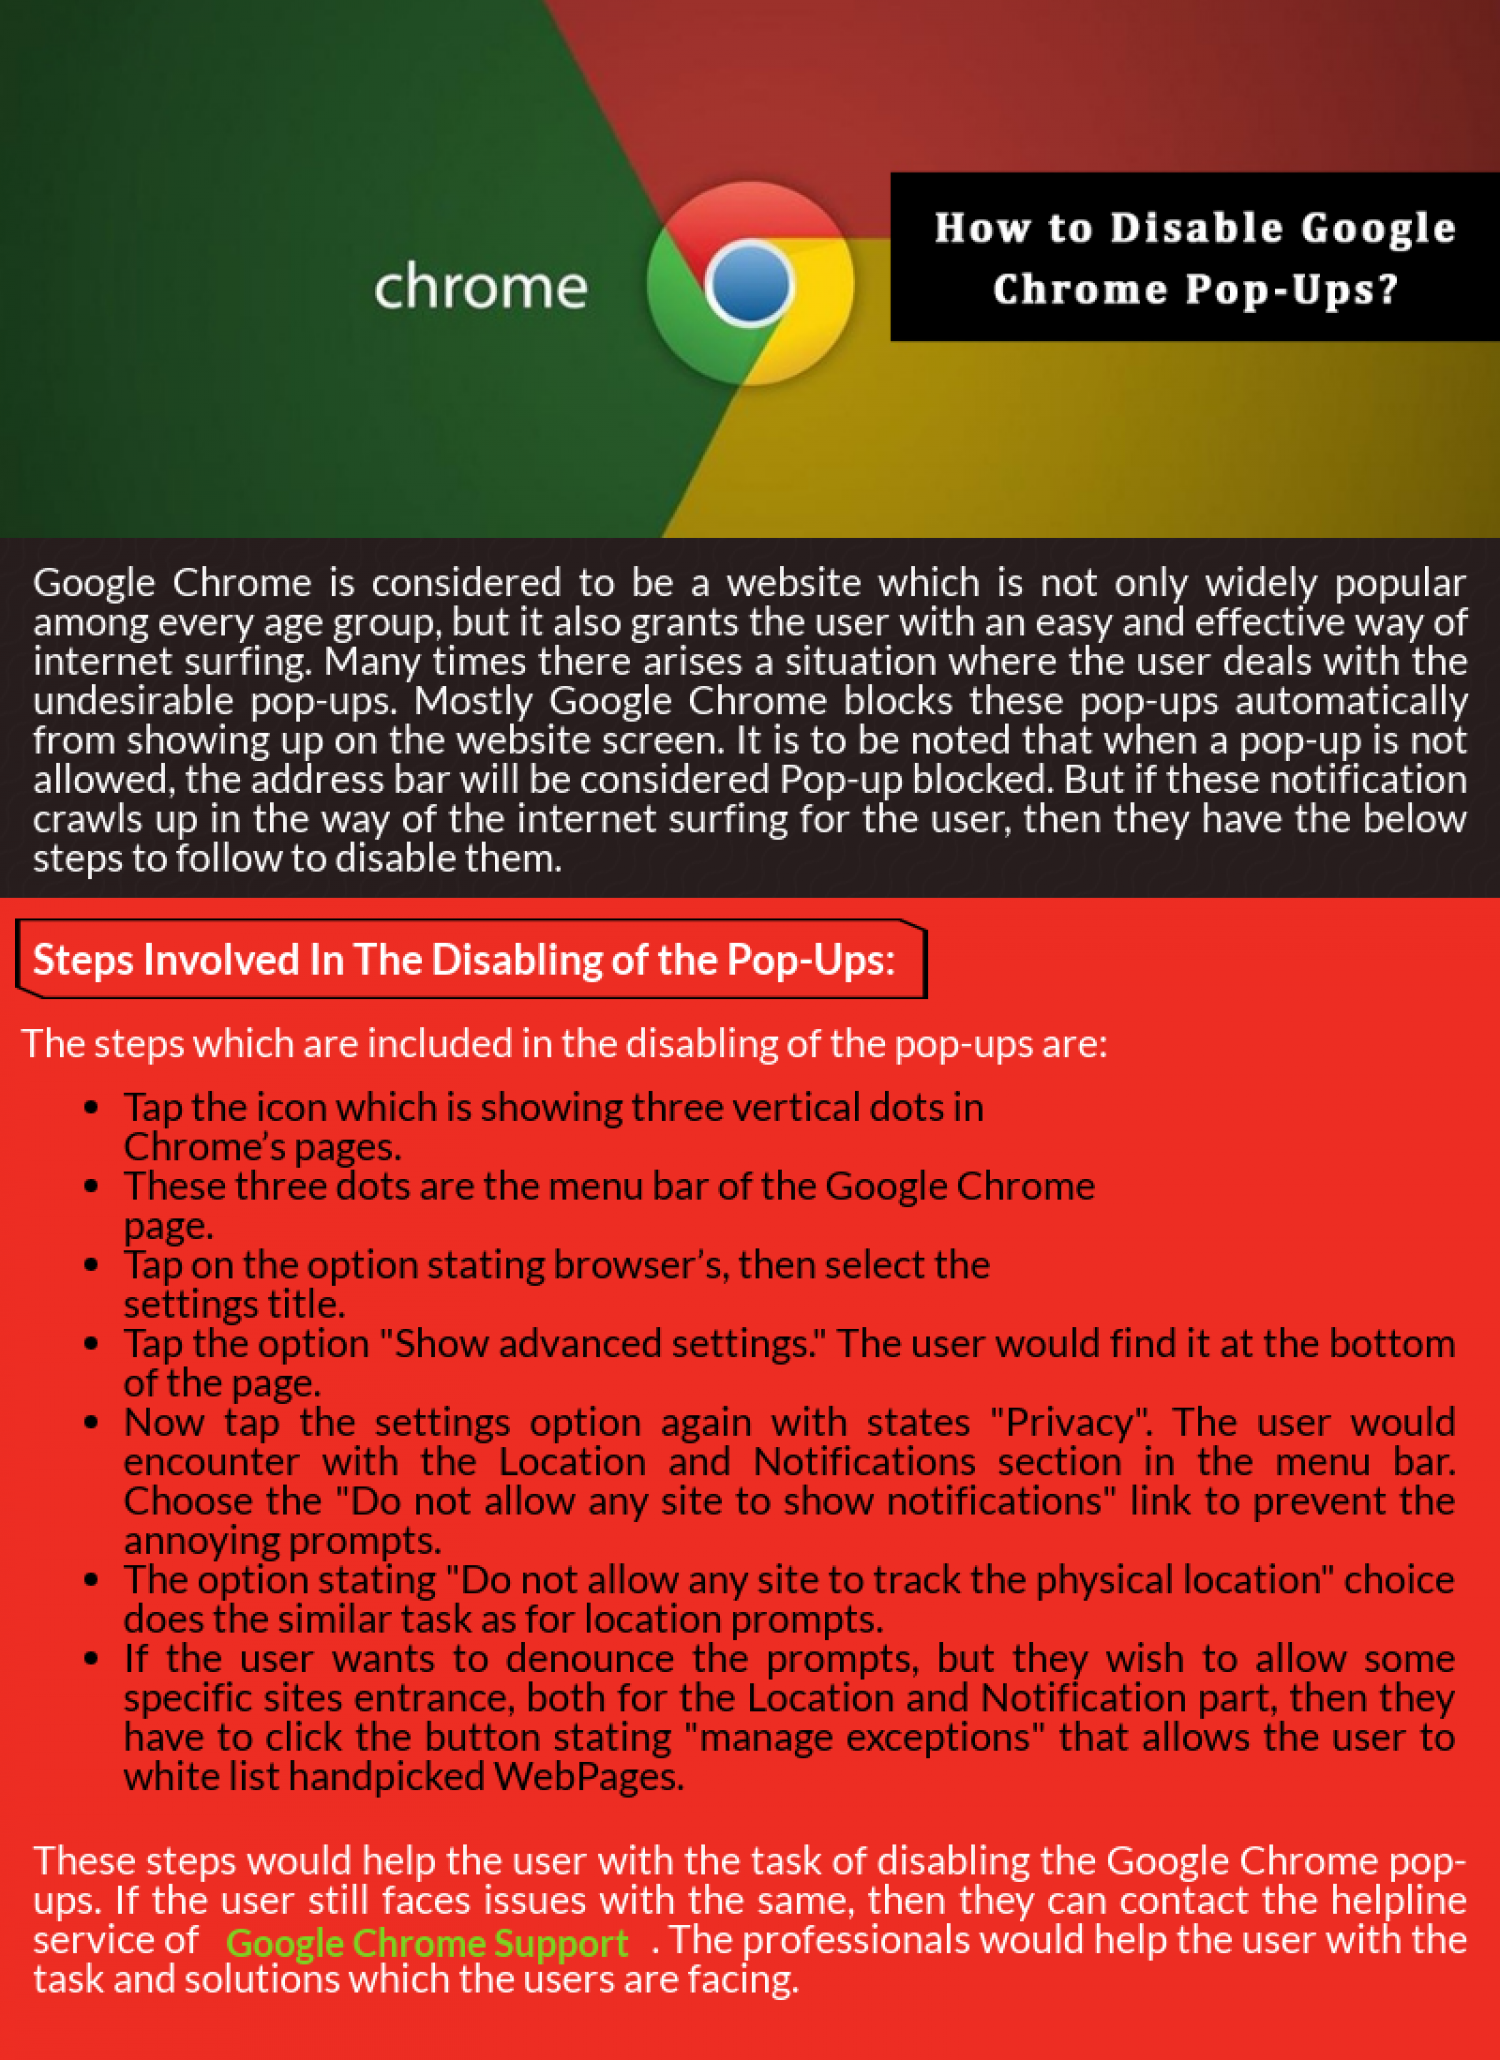 How to Disable Google Chrome Pop-Ups? Infographic